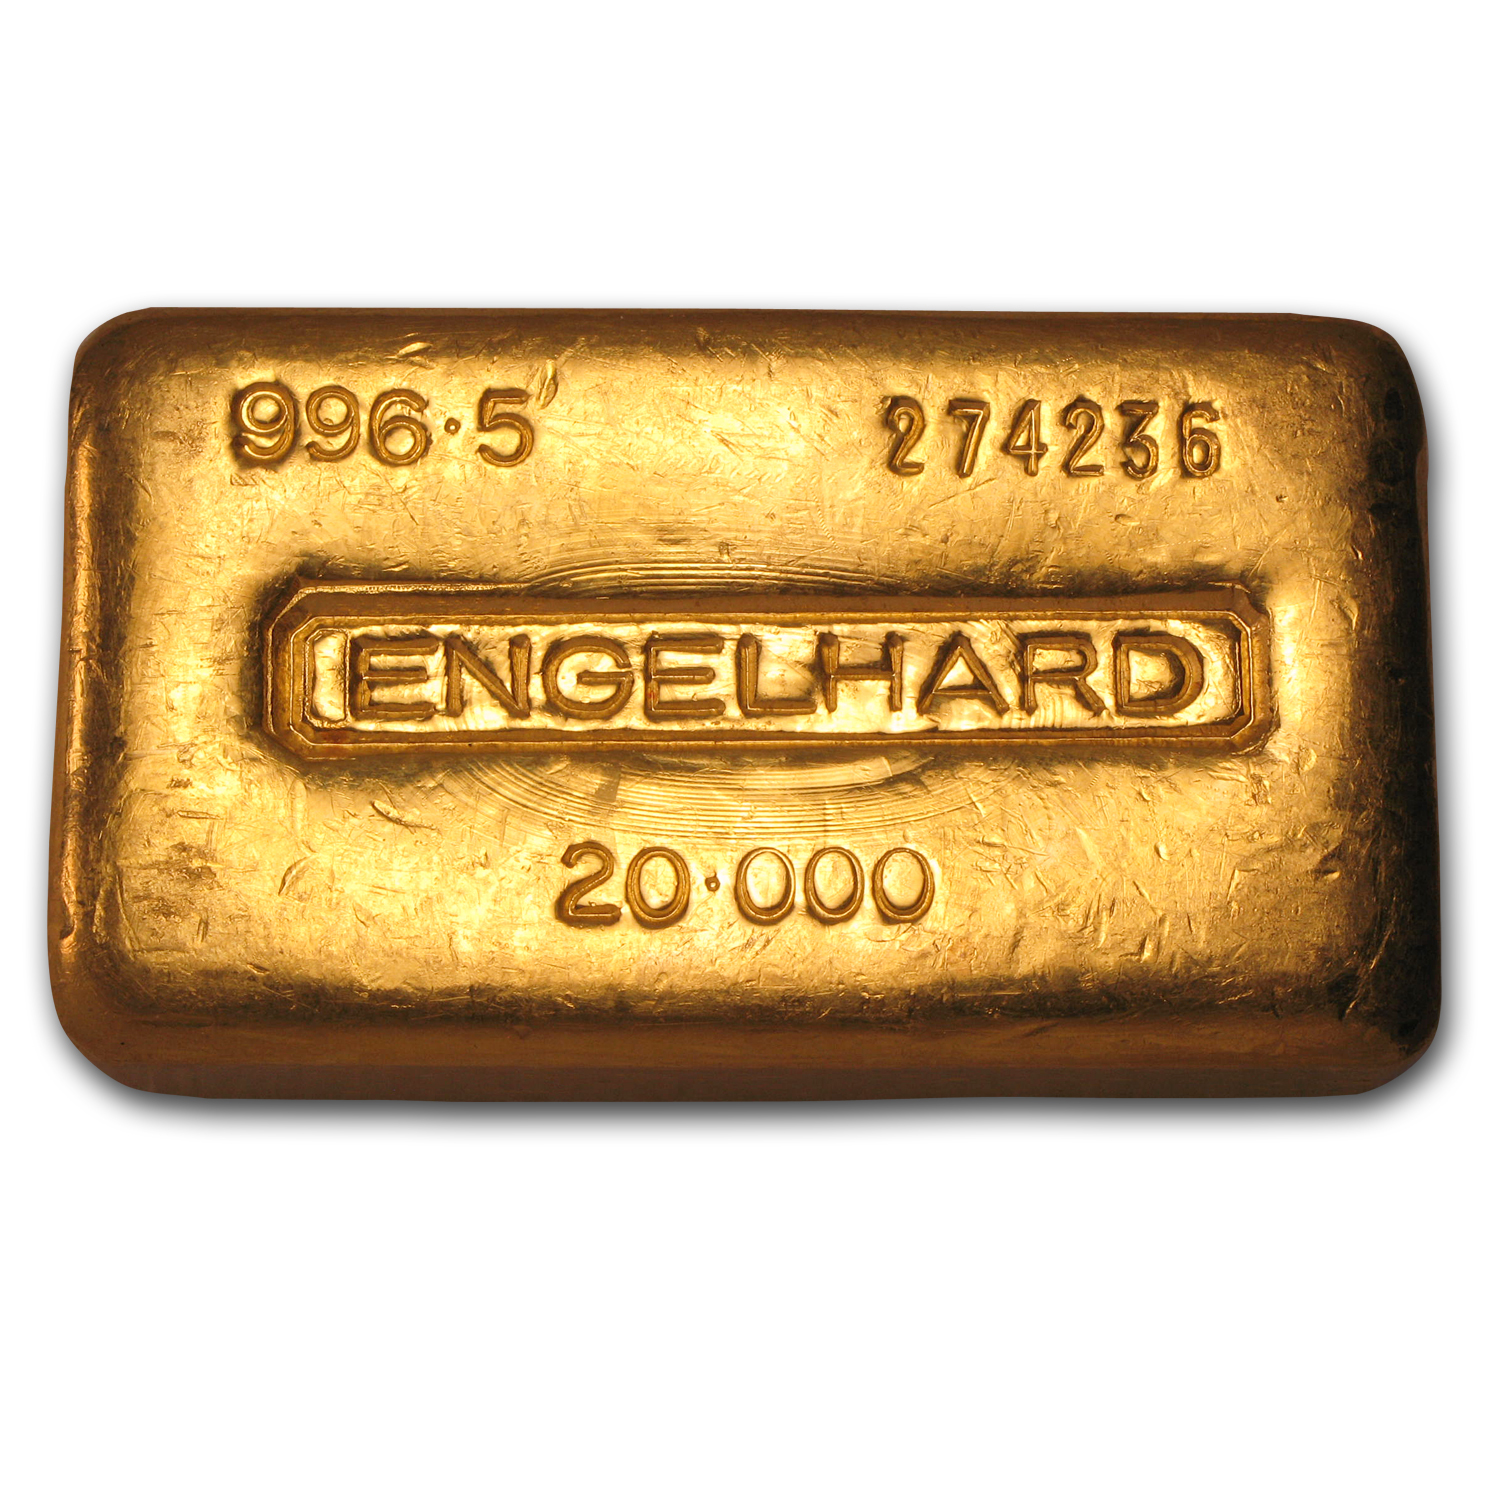 20 oz Gold Bar - Engelhard (Loaf-Style/Poured, .996.5 Fine)